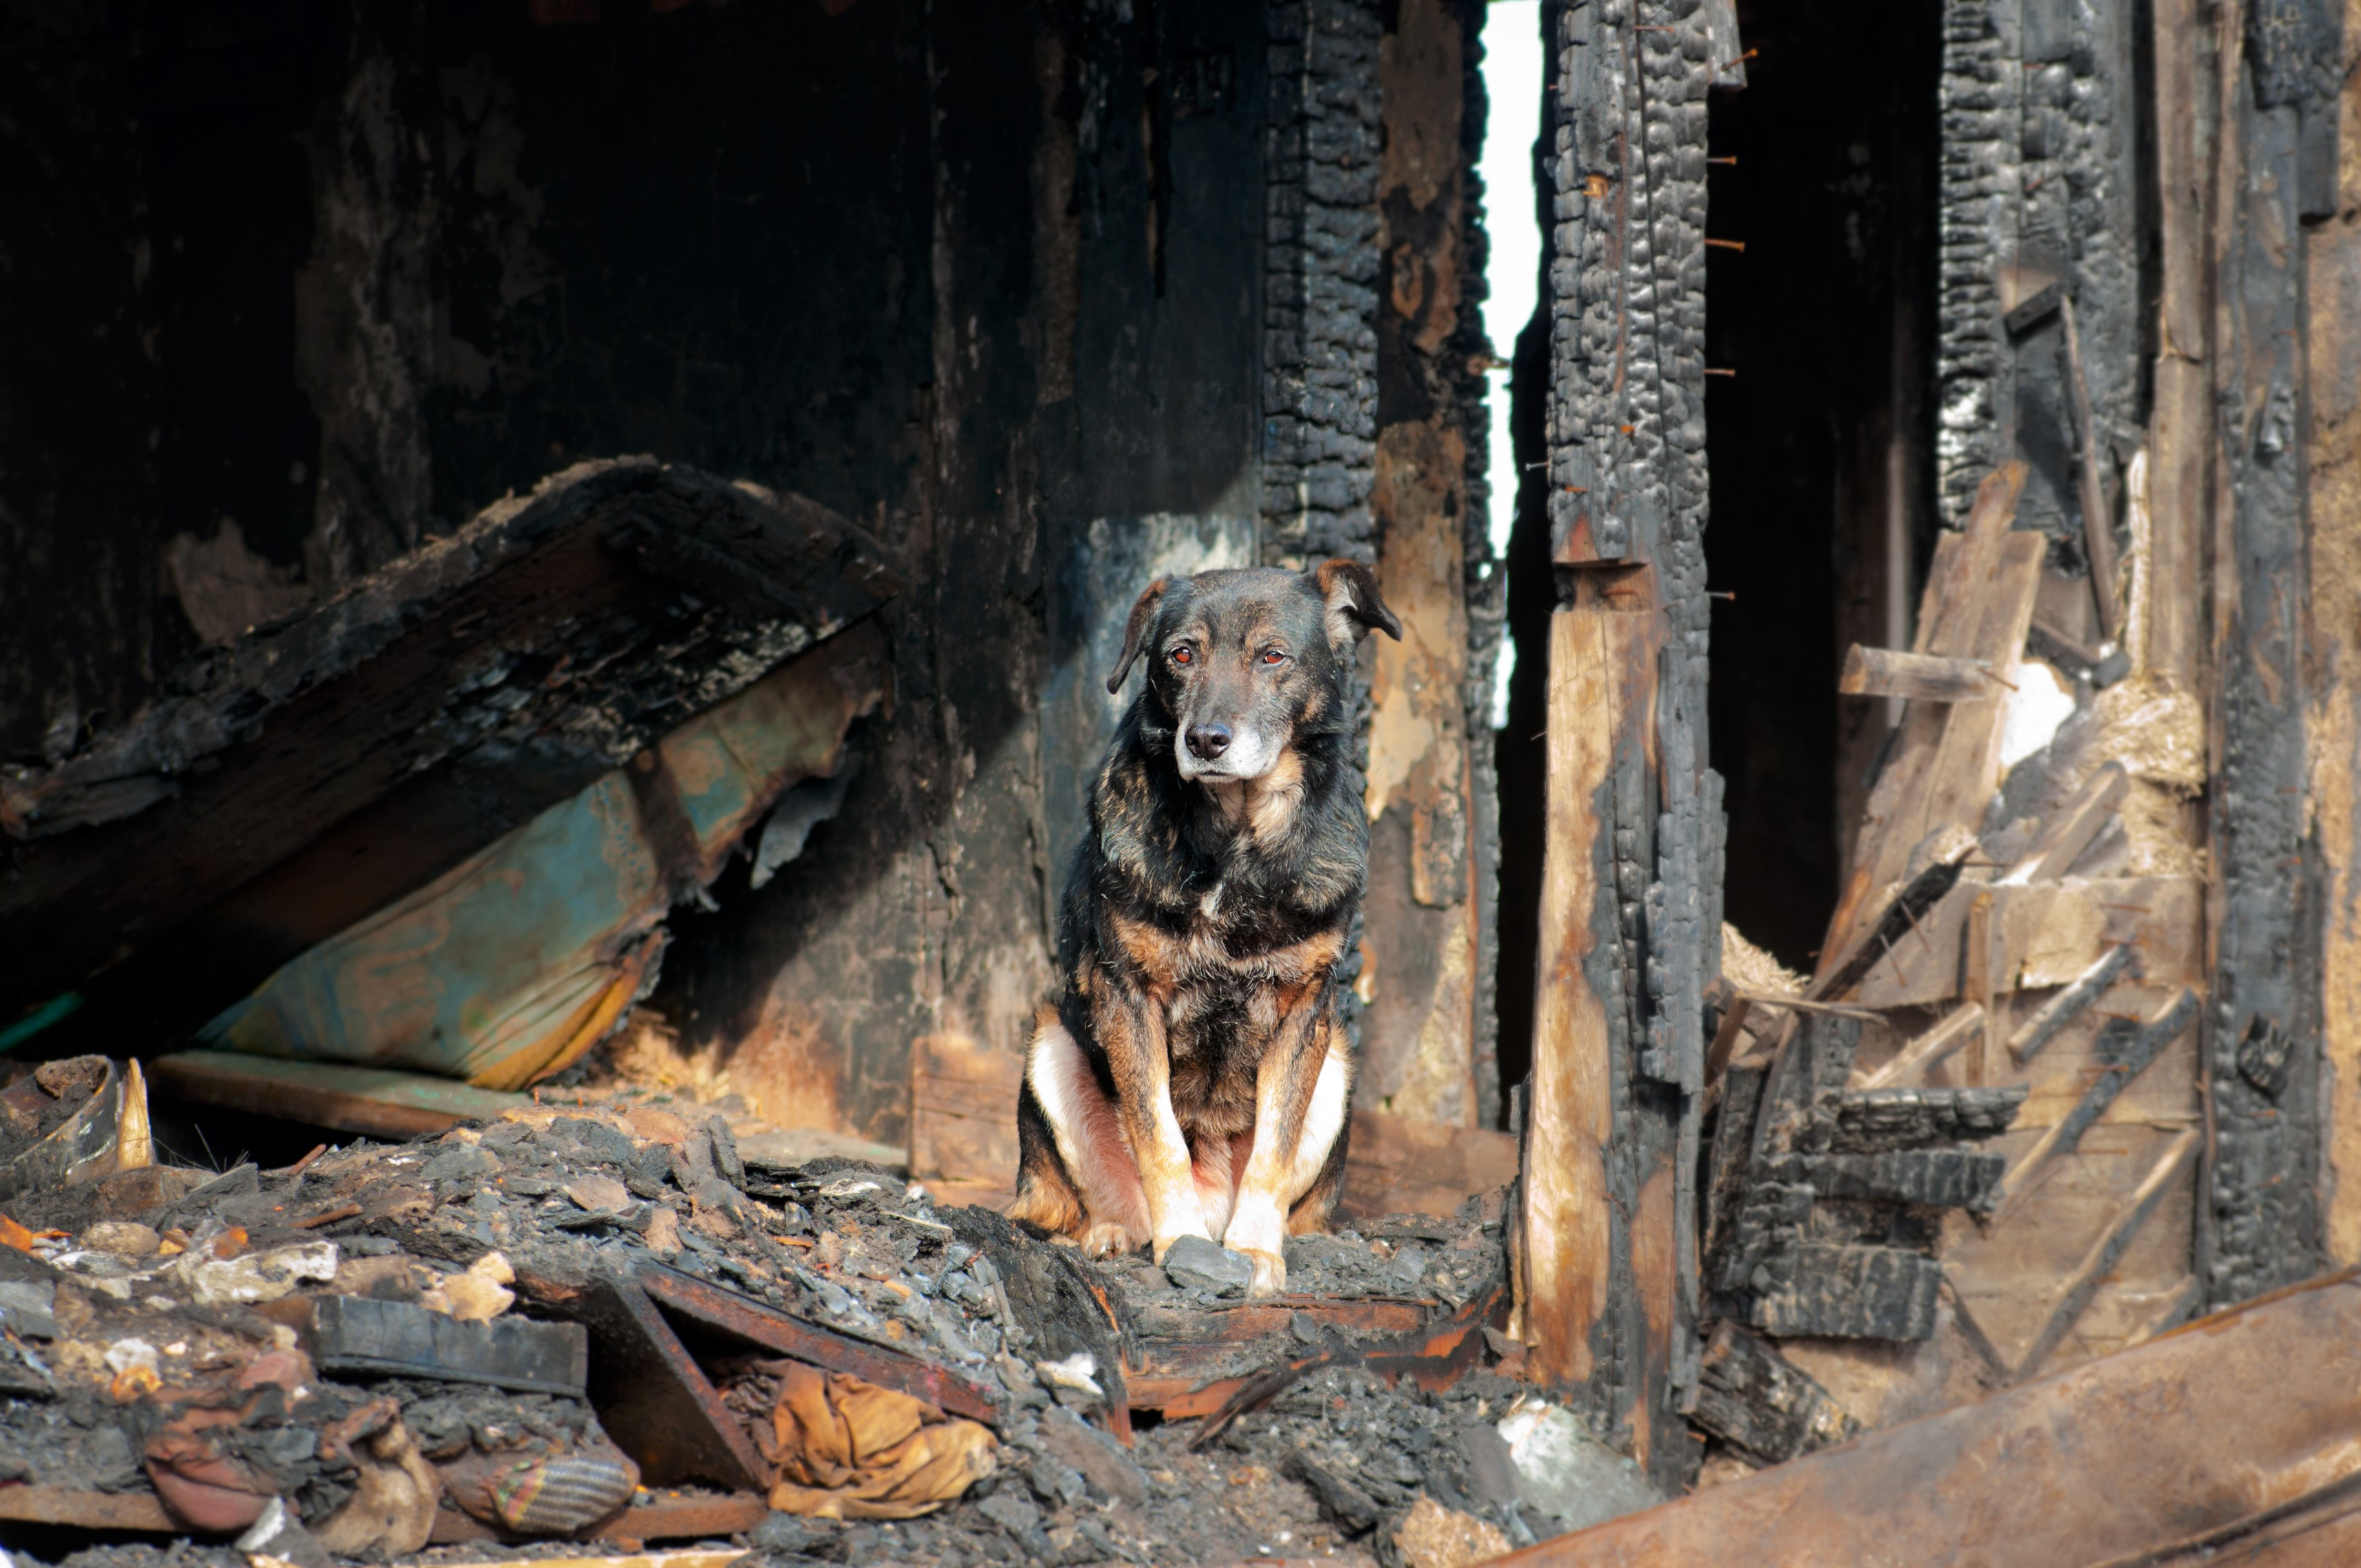 Dog Sitting on Burned Down House Grounds